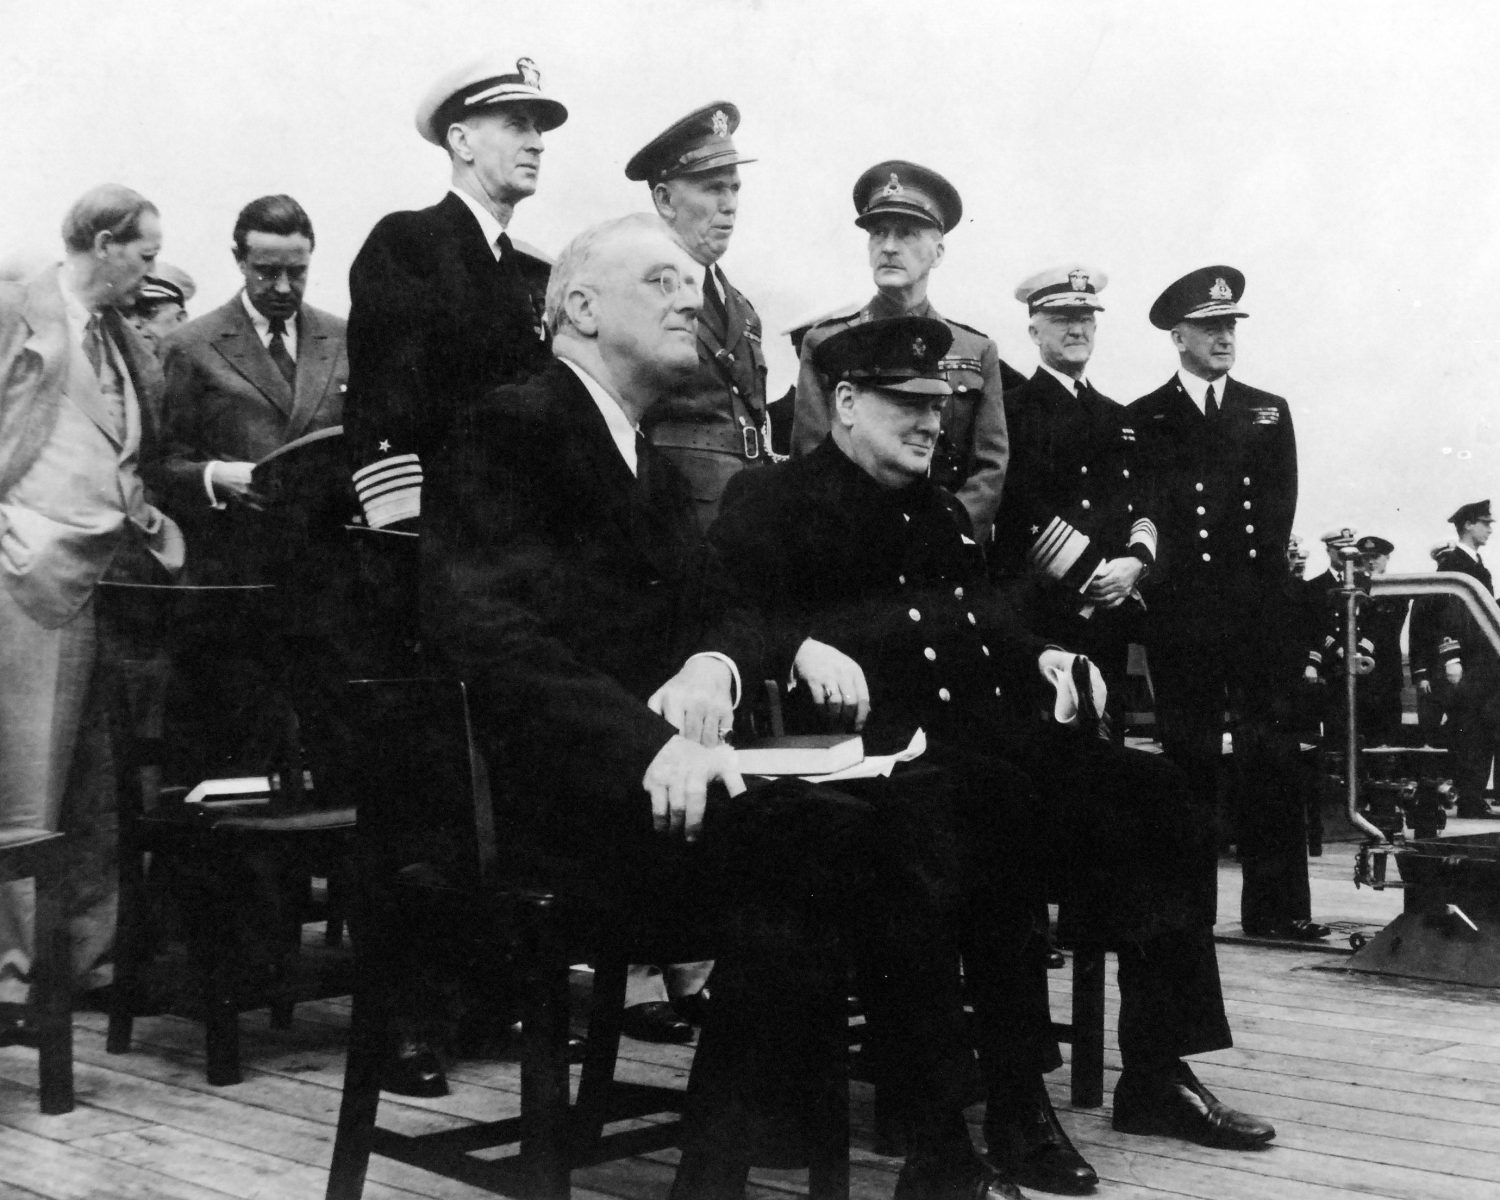 Roosevelt and Churchill at the Atlantic Charter Conference, Placentia Bay, Newfoundland, Aug 1941 (US Naval History and Heritage Command: 80-G-26850)